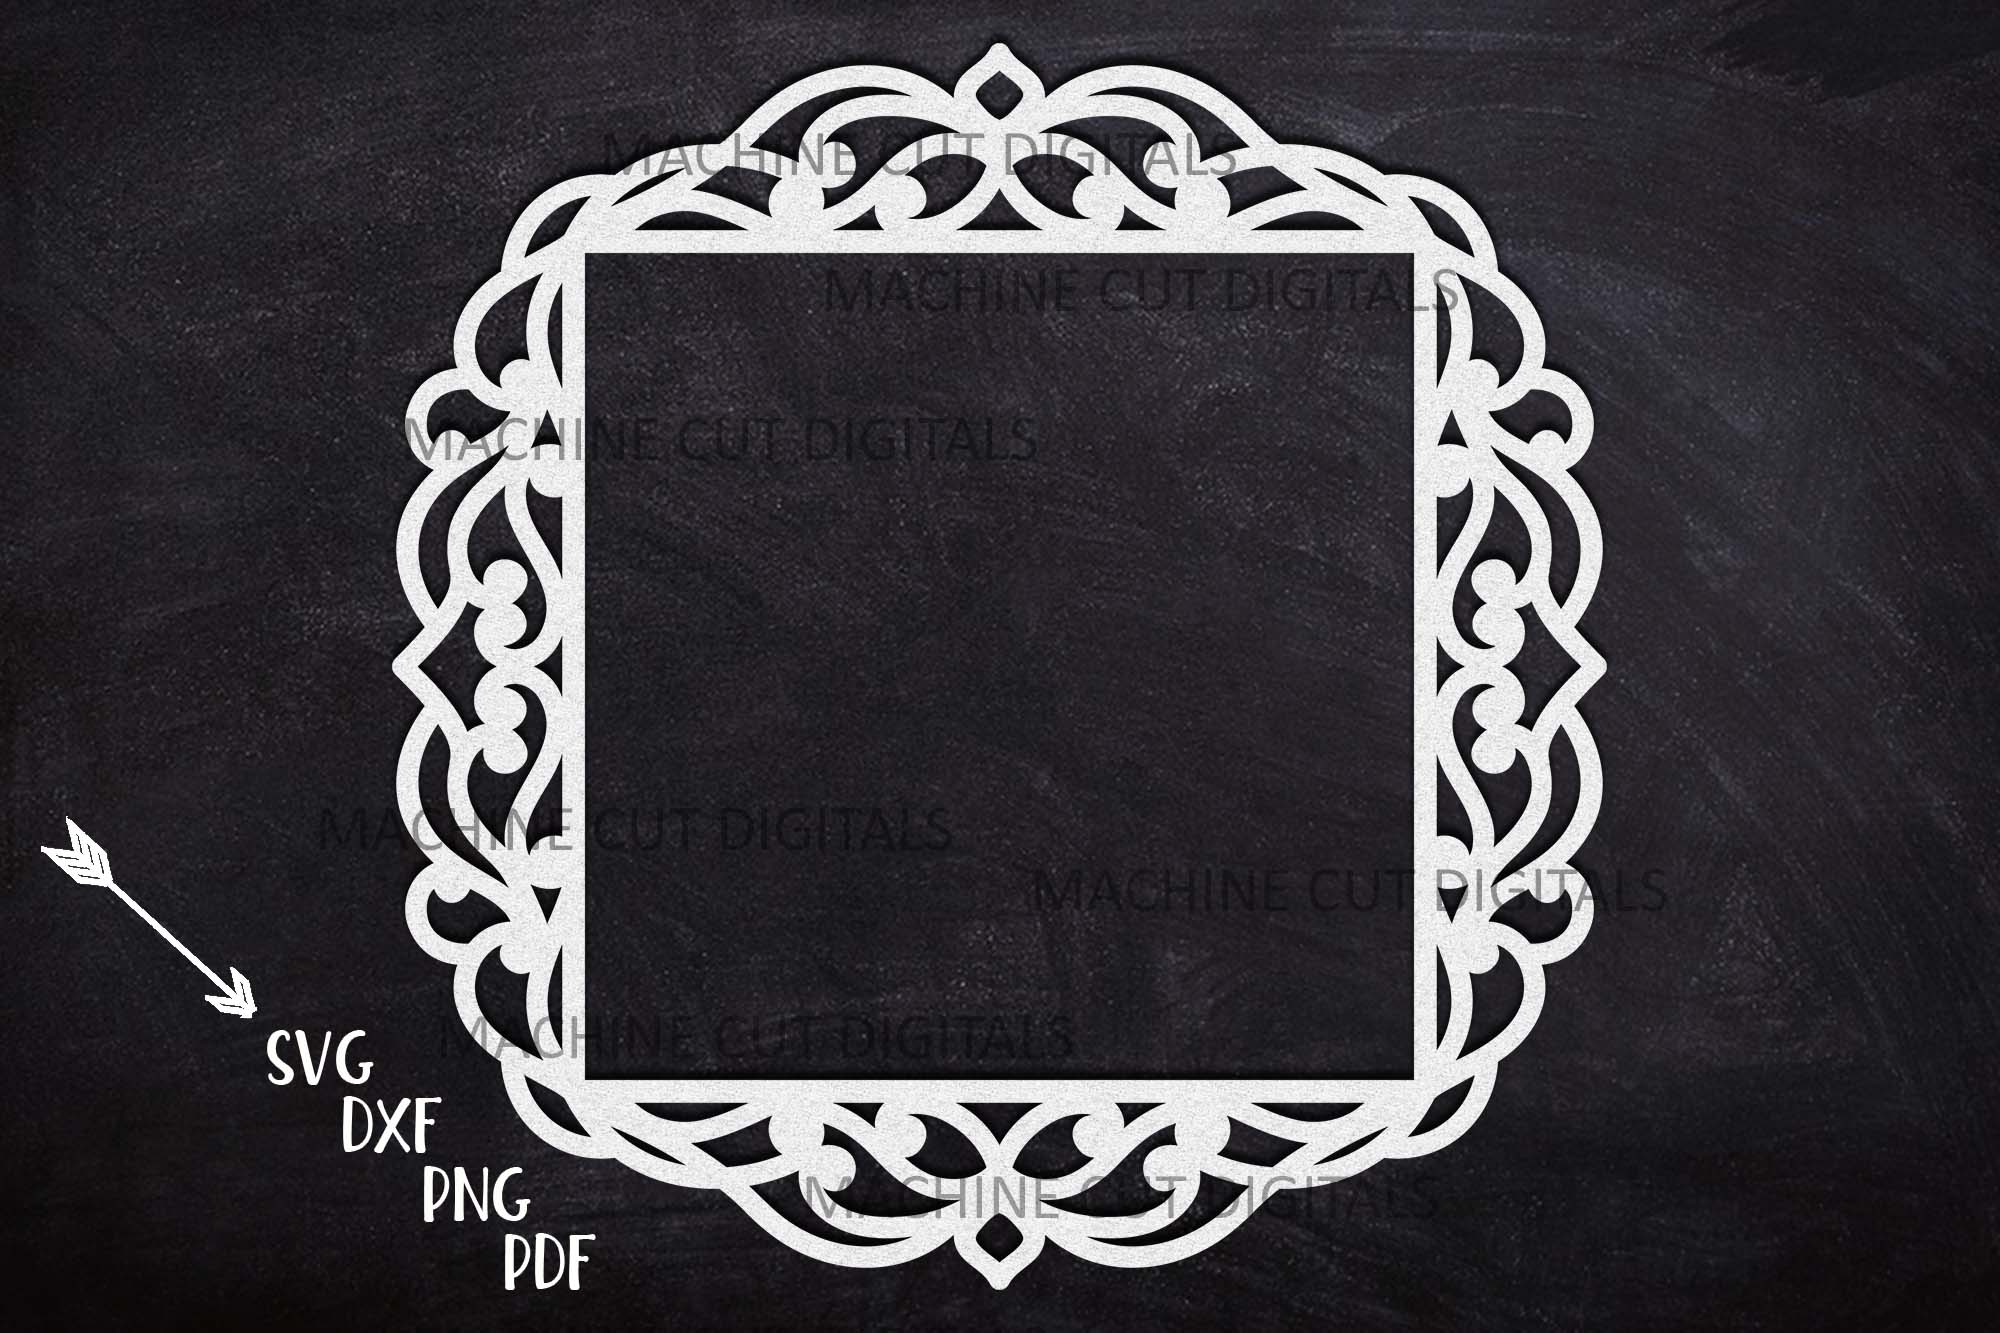 Download Free Square Frame With Swirls Cut Out Svg Creative Fabrica for Cricut Explore, Silhouette and other cutting machines.